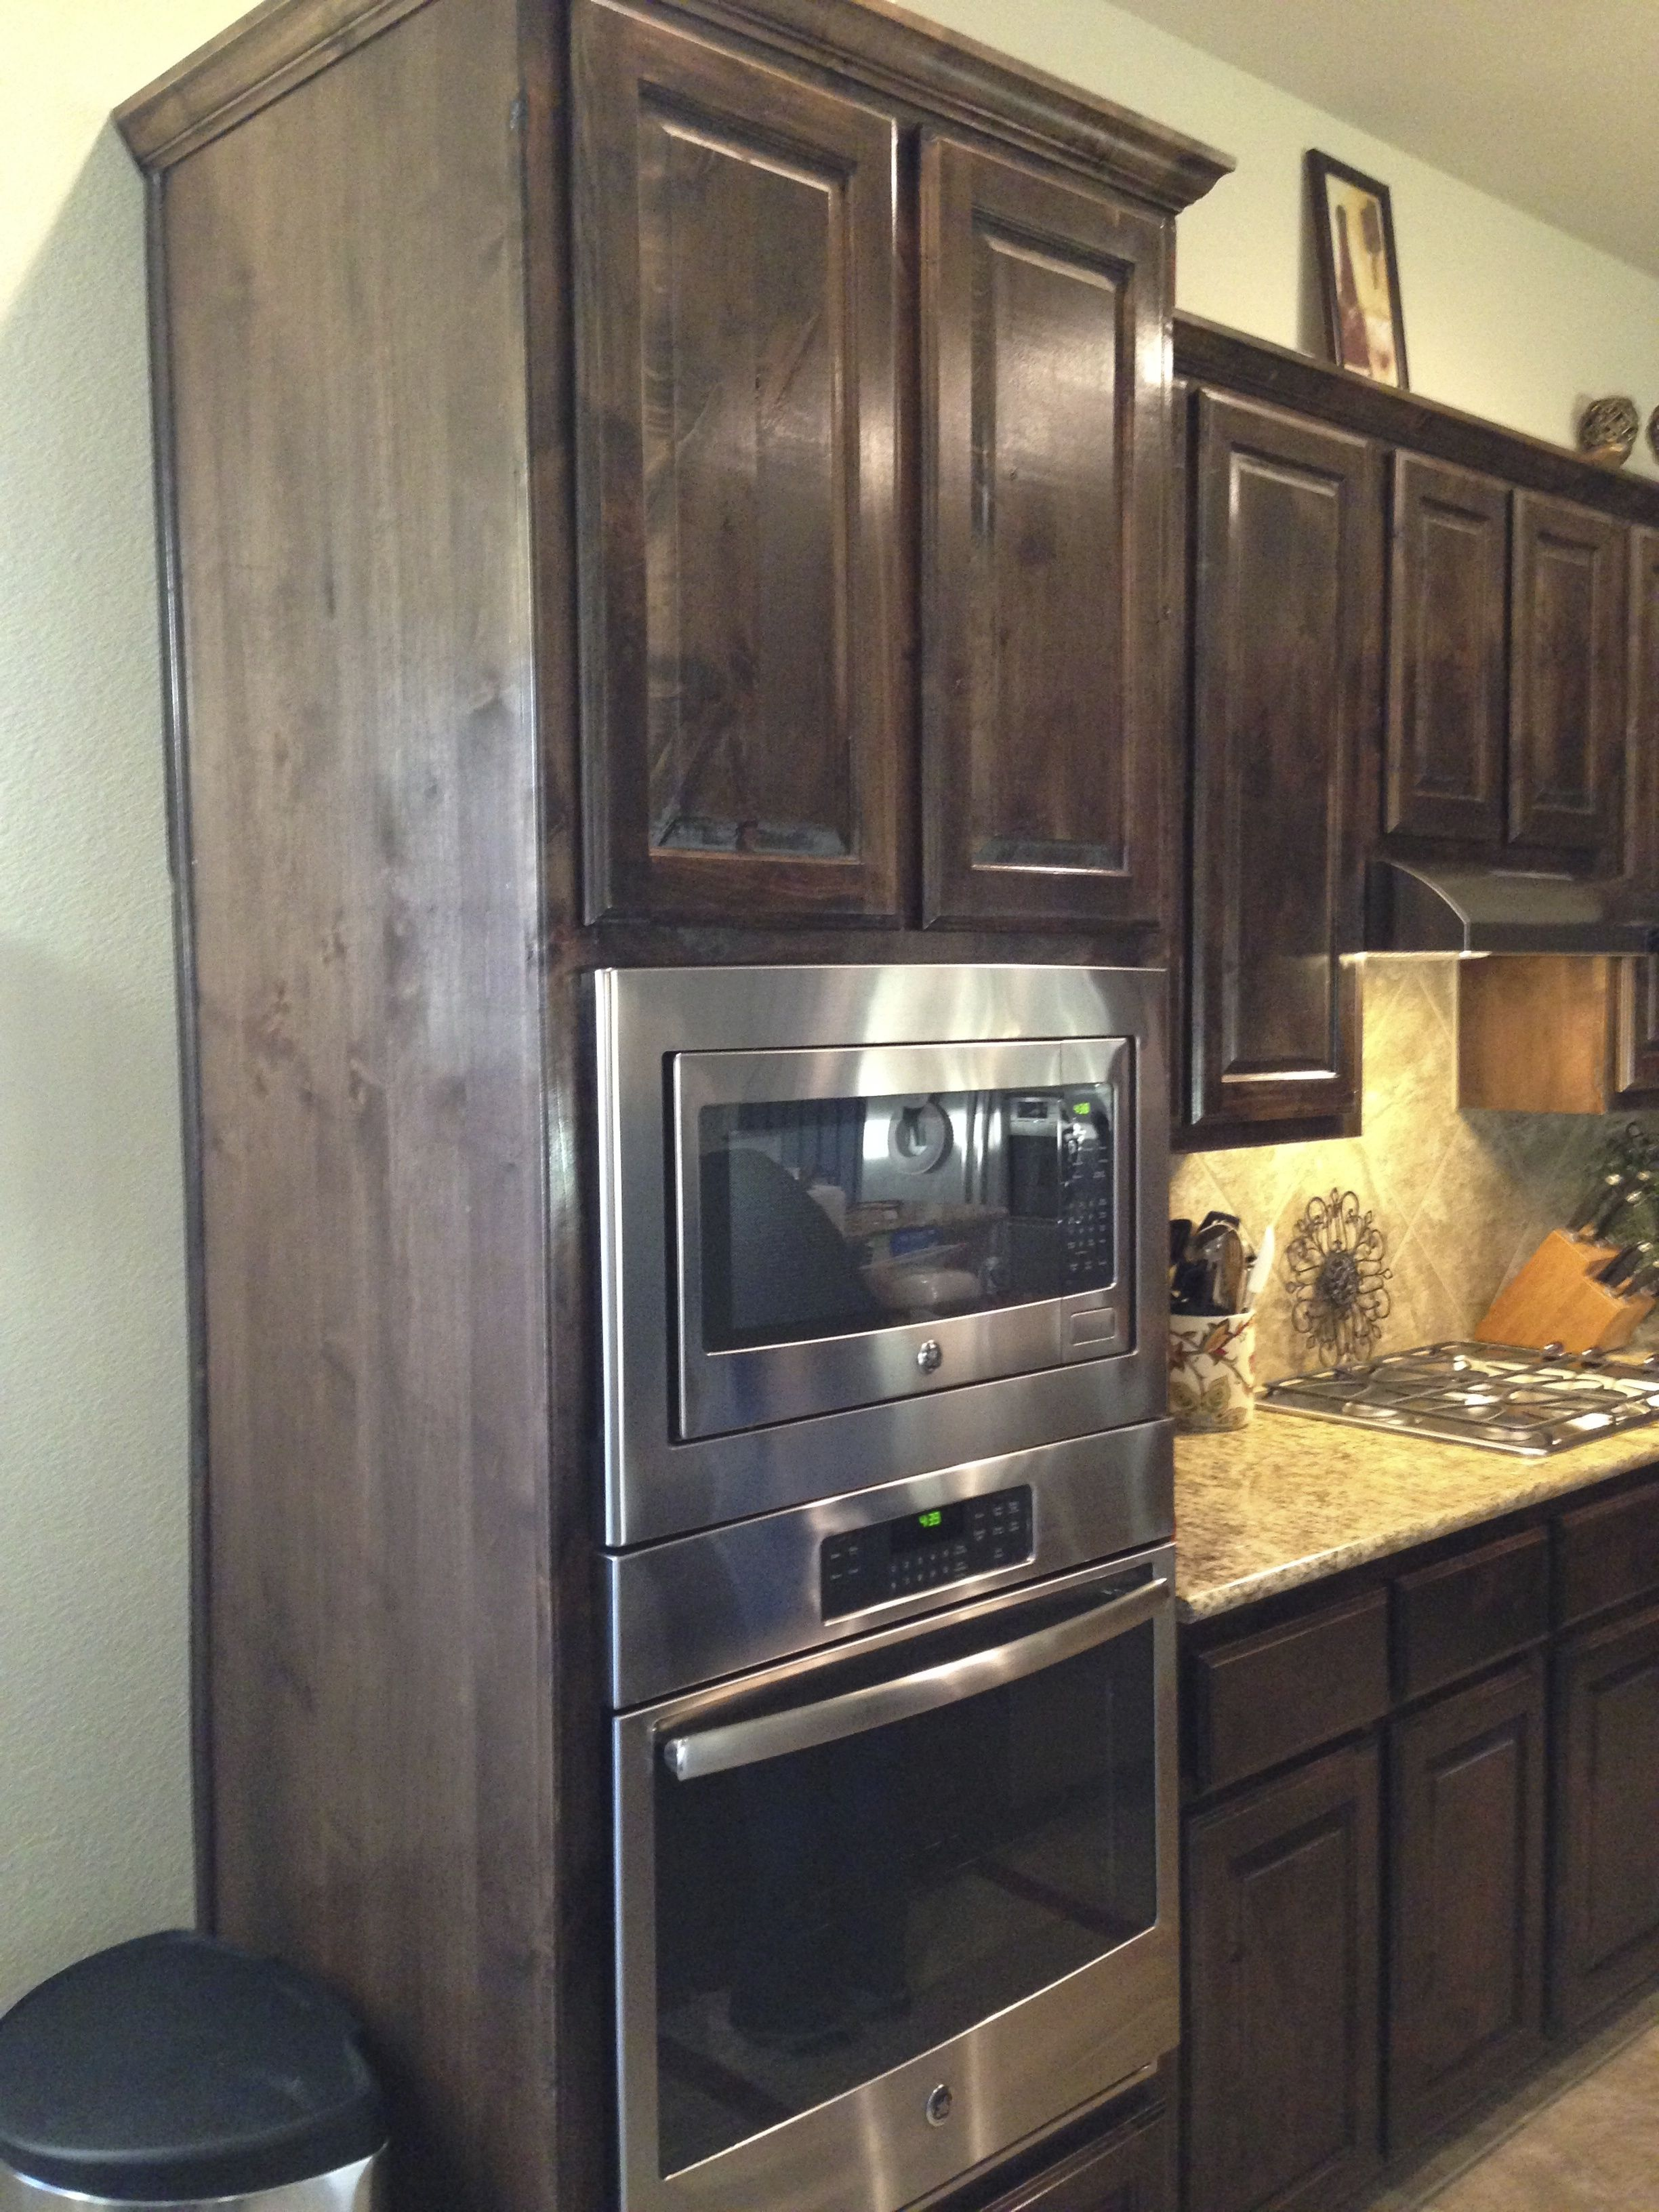 Kitchen cabinets (With images) | Kitchen remodel, Updating ...